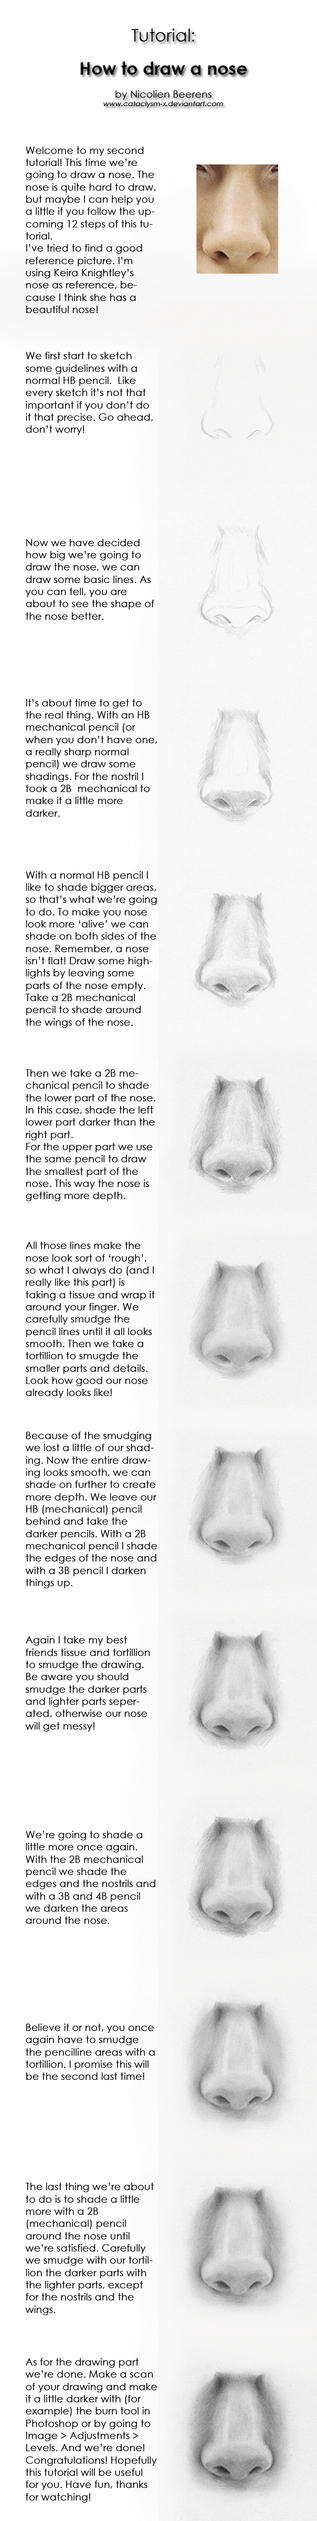 Tutorial: how to draw noses by Cataclysm-X